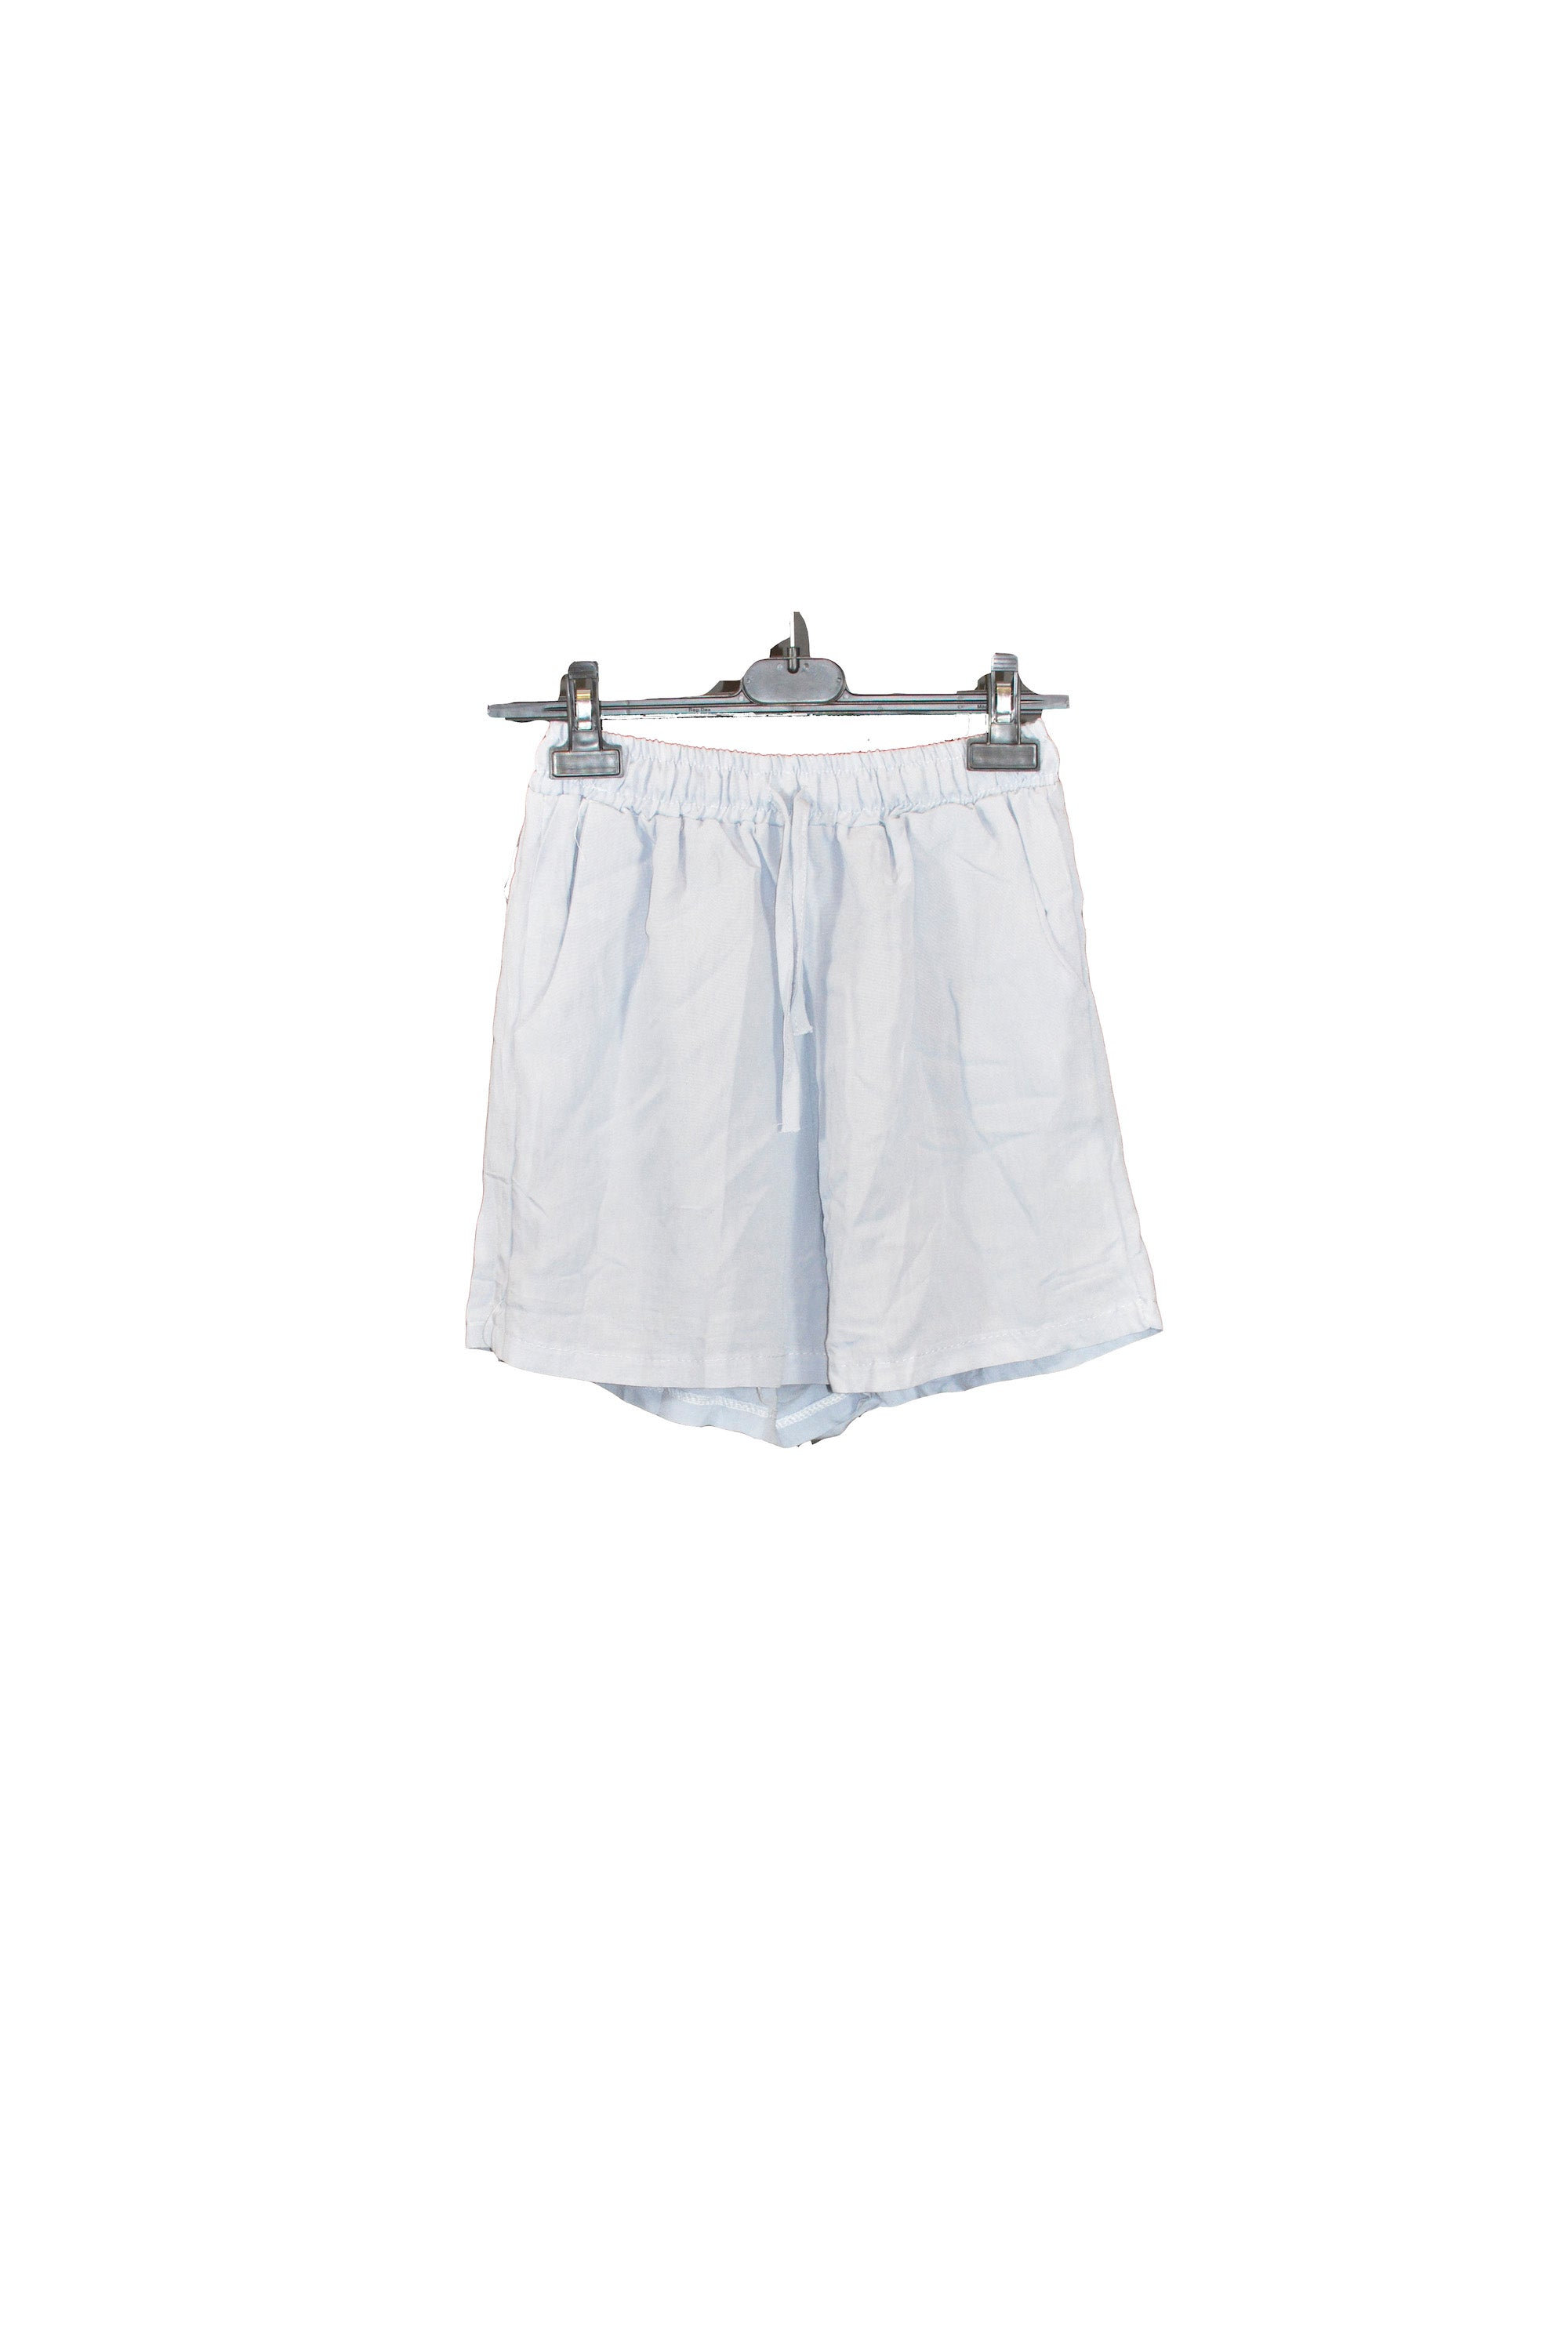 Blue Belted Shorts With Adjustable Waist Ribbon